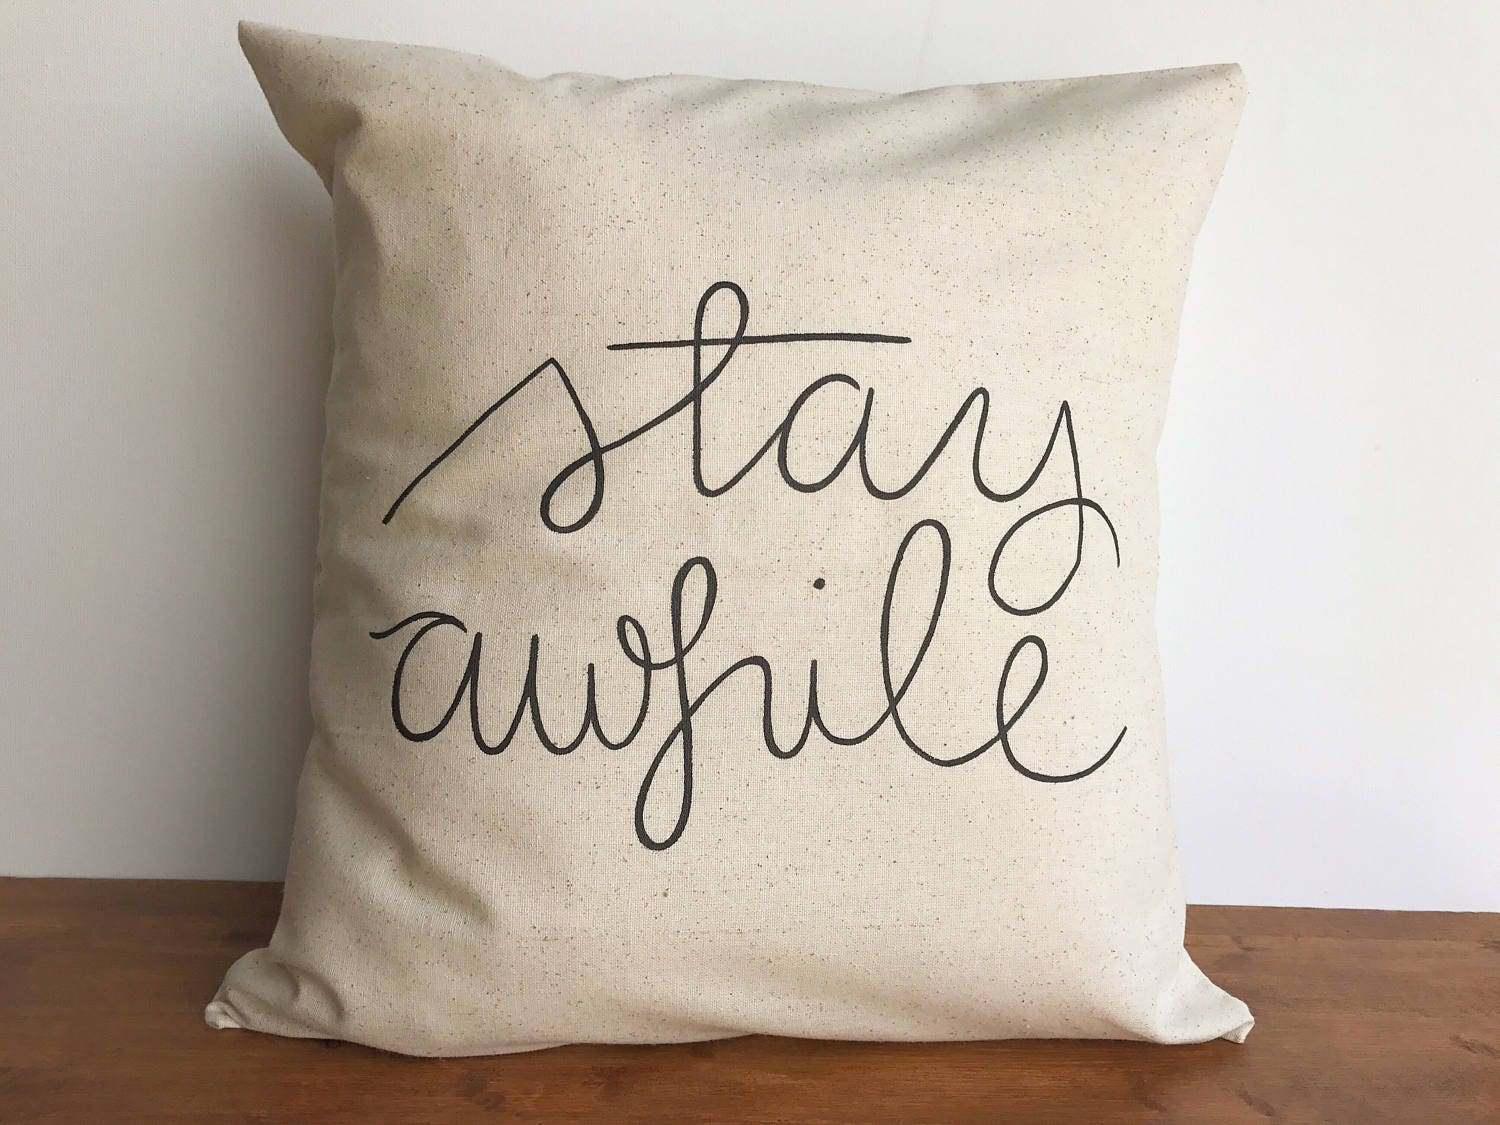 Throw Pillow Covers Farmhouse : Stay awhile throw pillow case couch pillows farmhouse decor